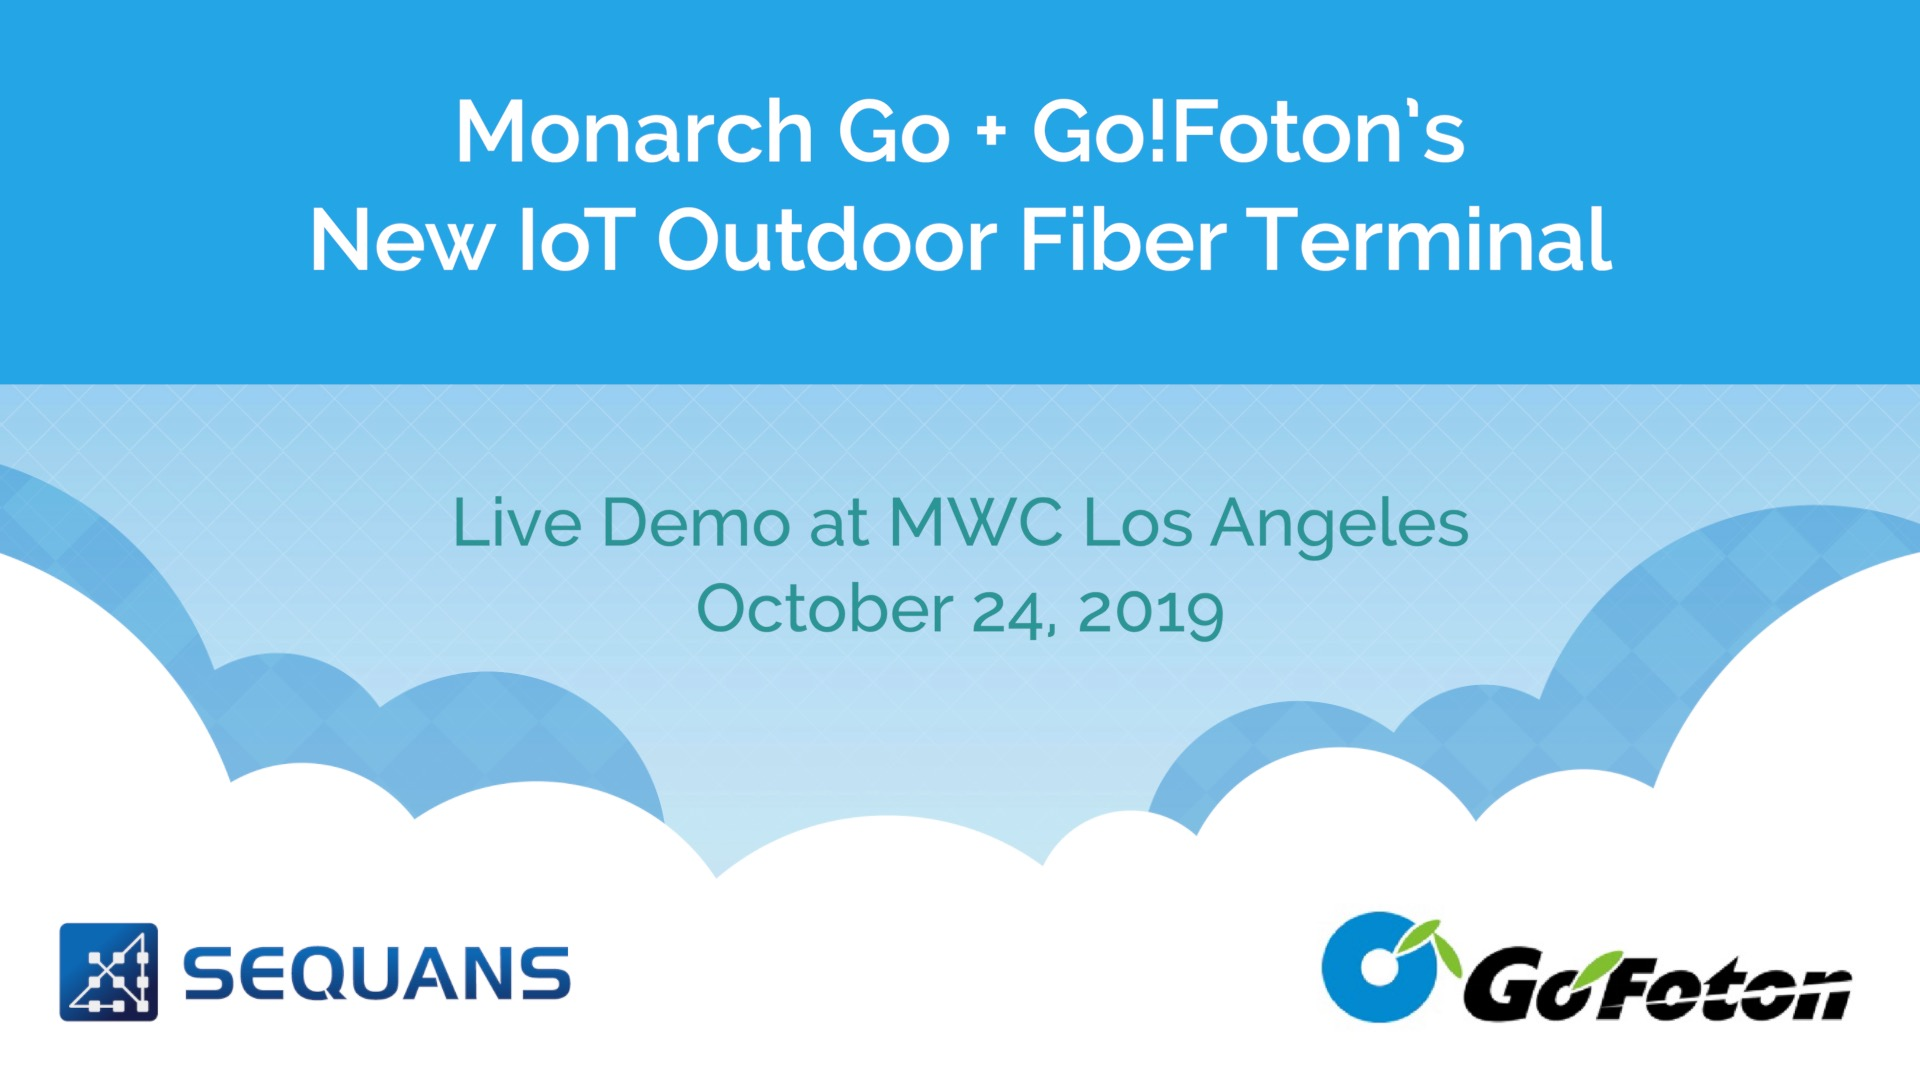 Monarch Go + Go!Foton IoT Outdoor Fiber Terminal Demo